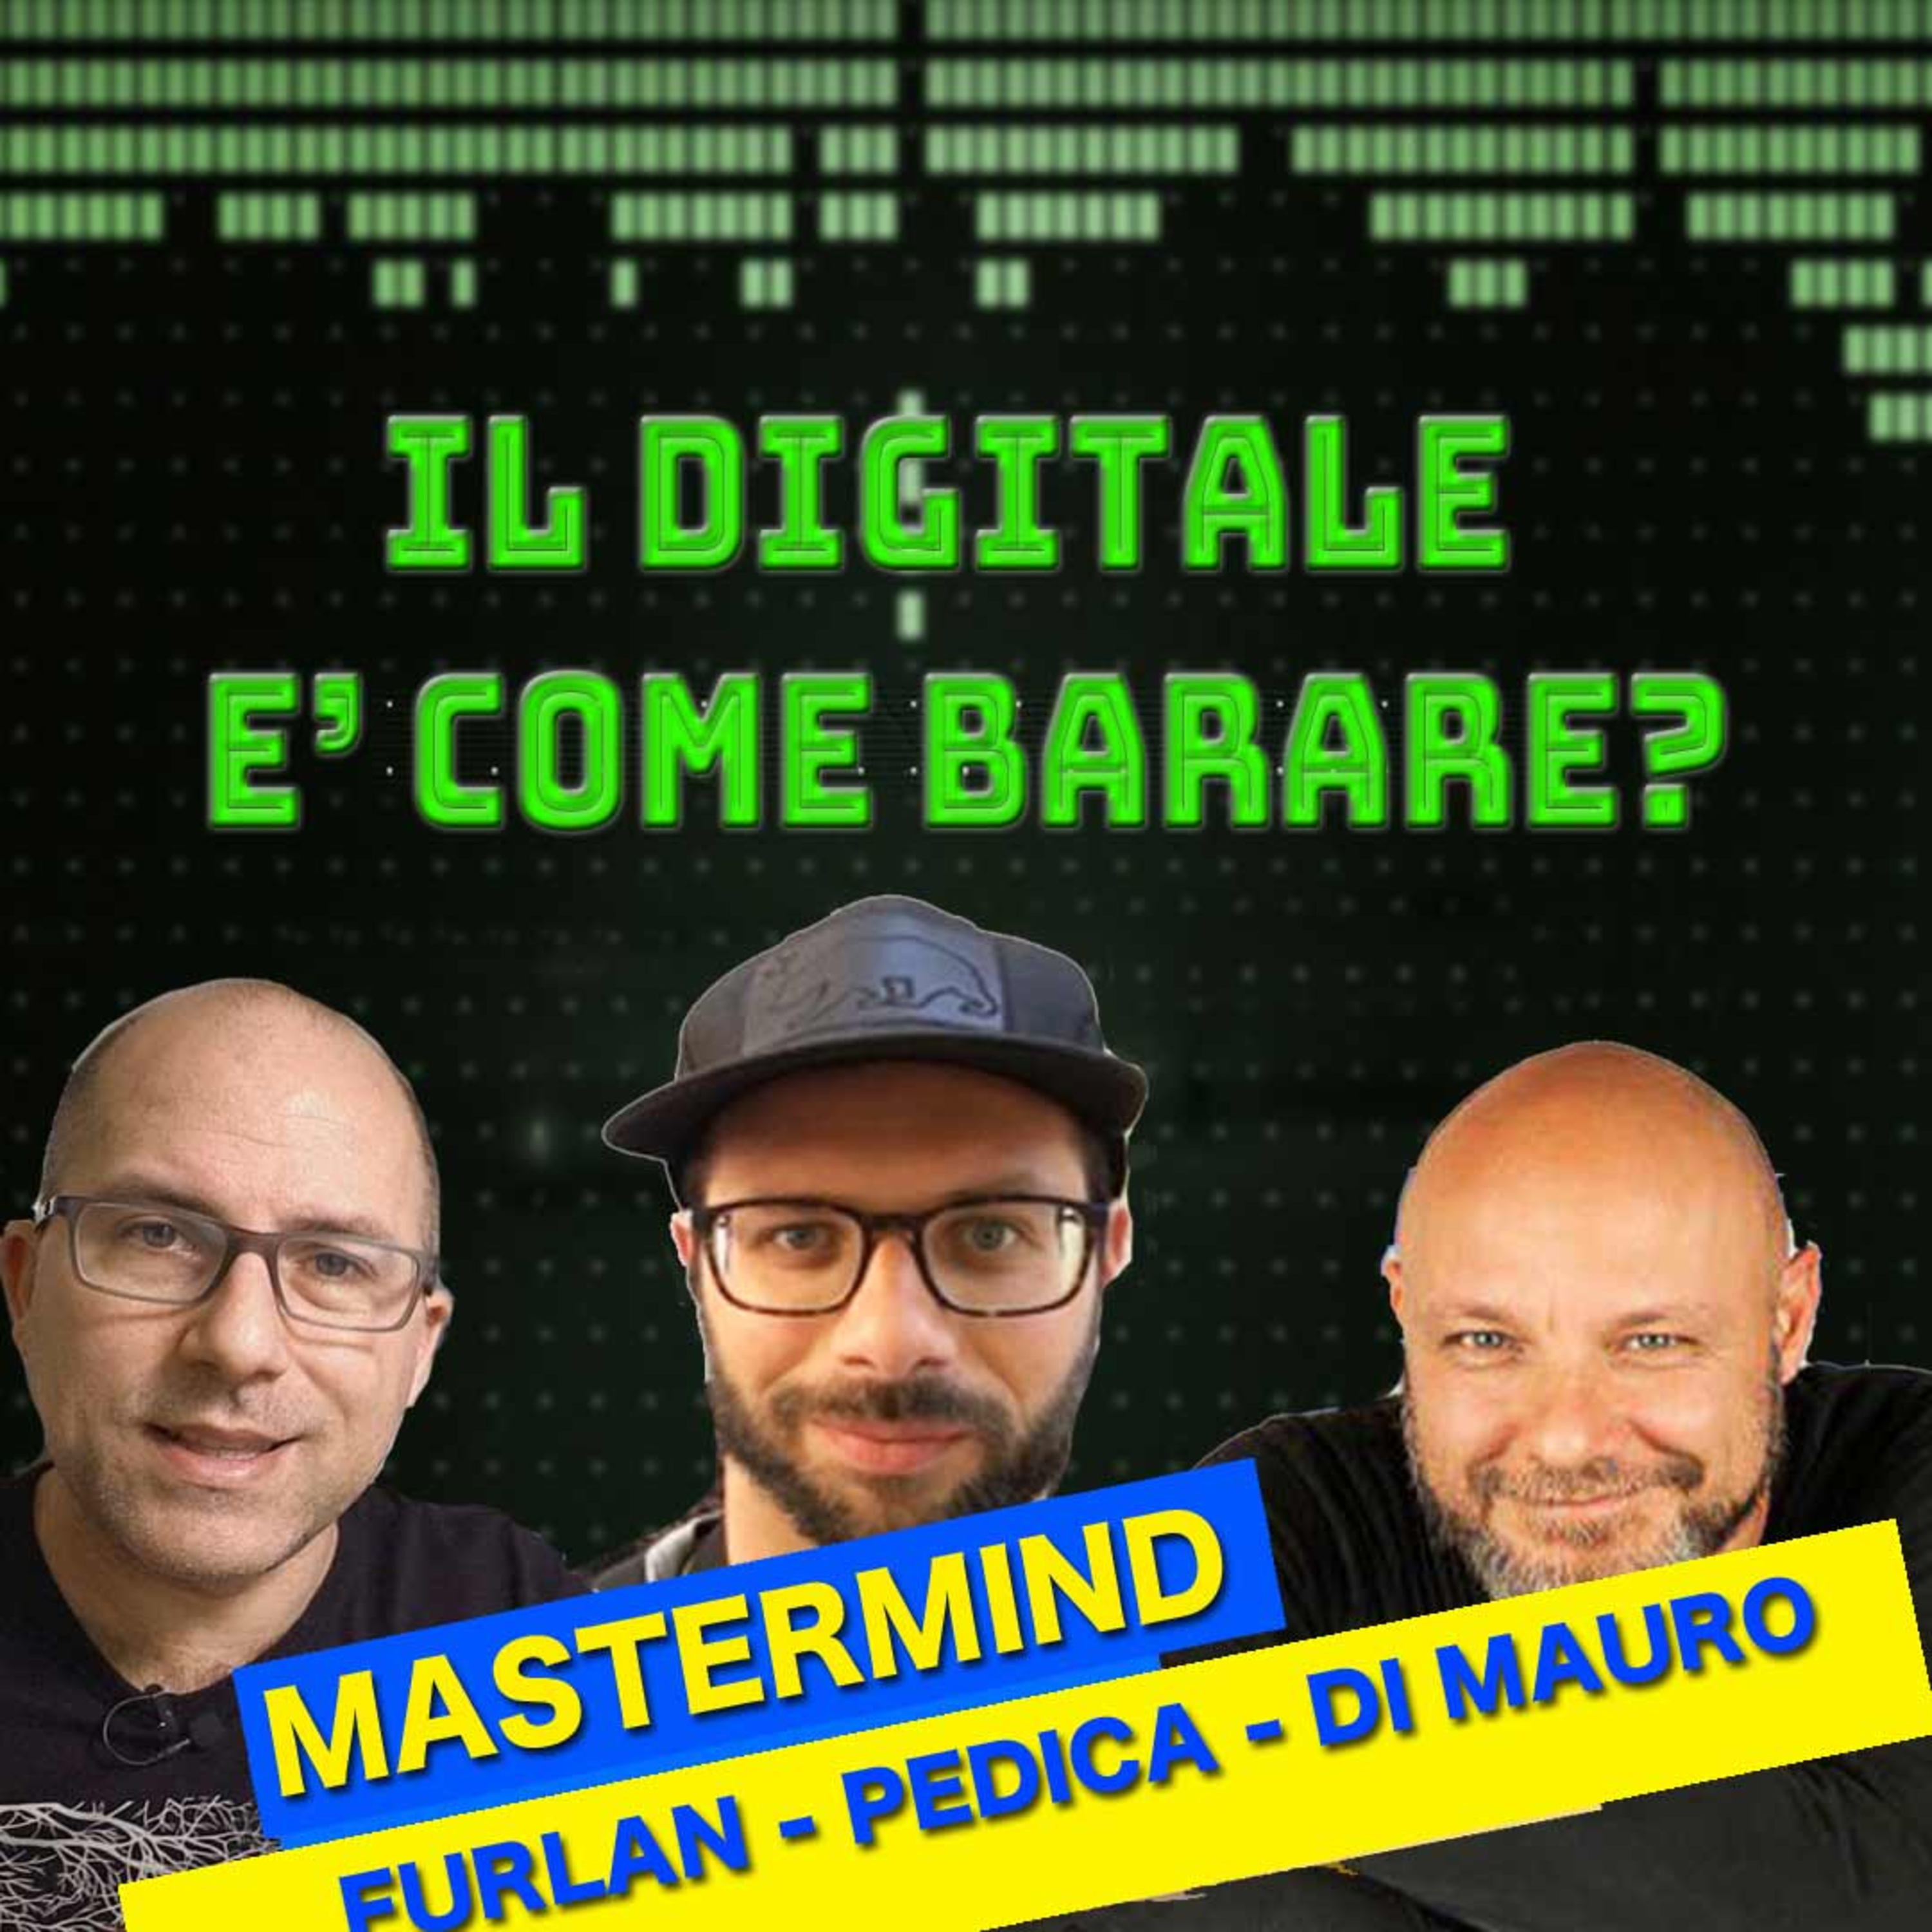 Il digitale è come barare?